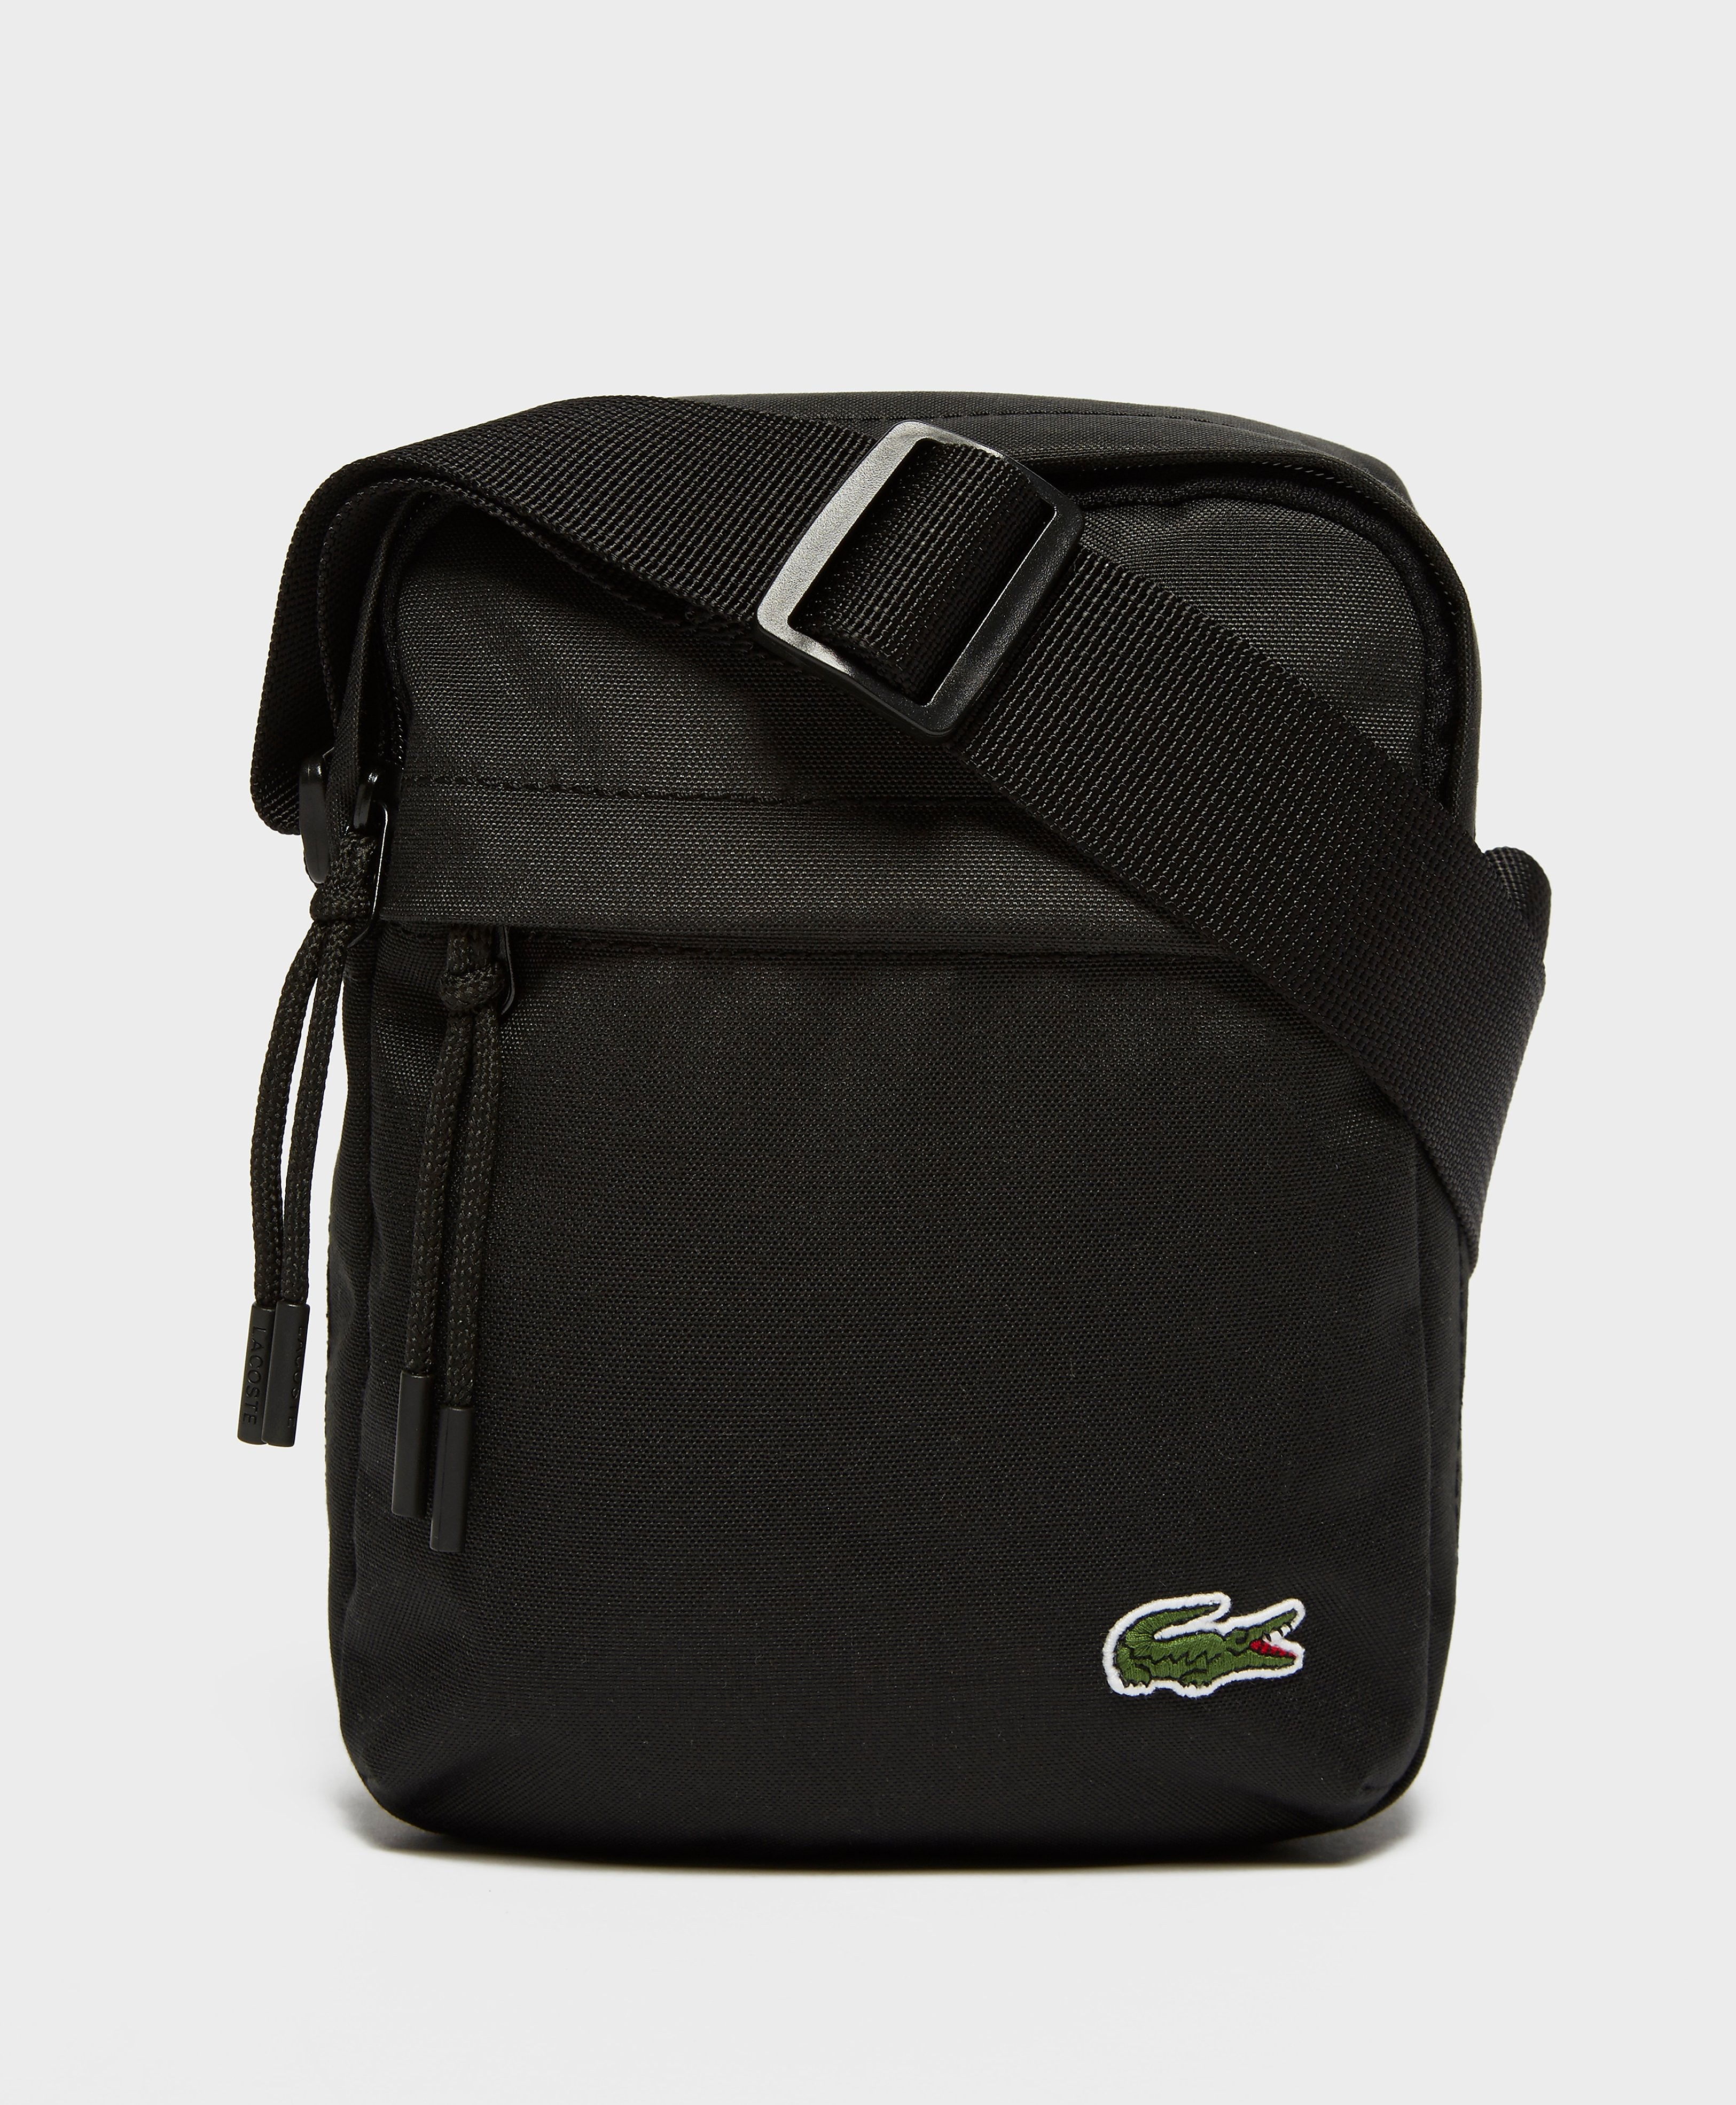 Lacoste Lacoste Small Items Bag